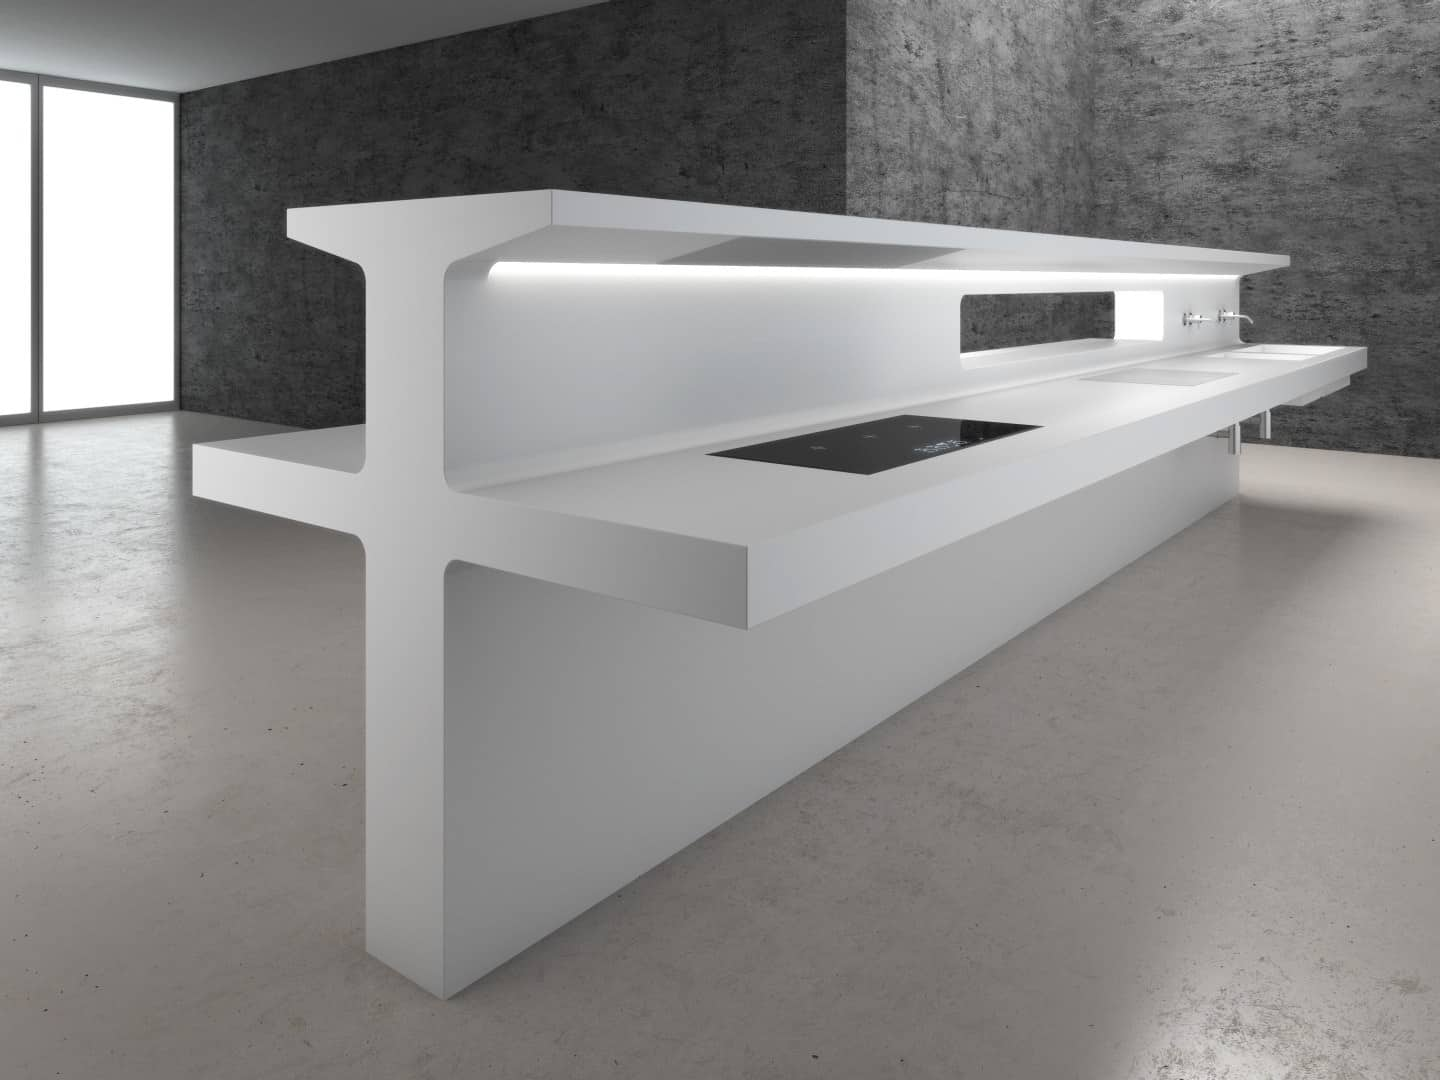 Counter Height Kitchen Island Futuristic Wall Mounted Kitchen By Antonio Lupi - Lacucina